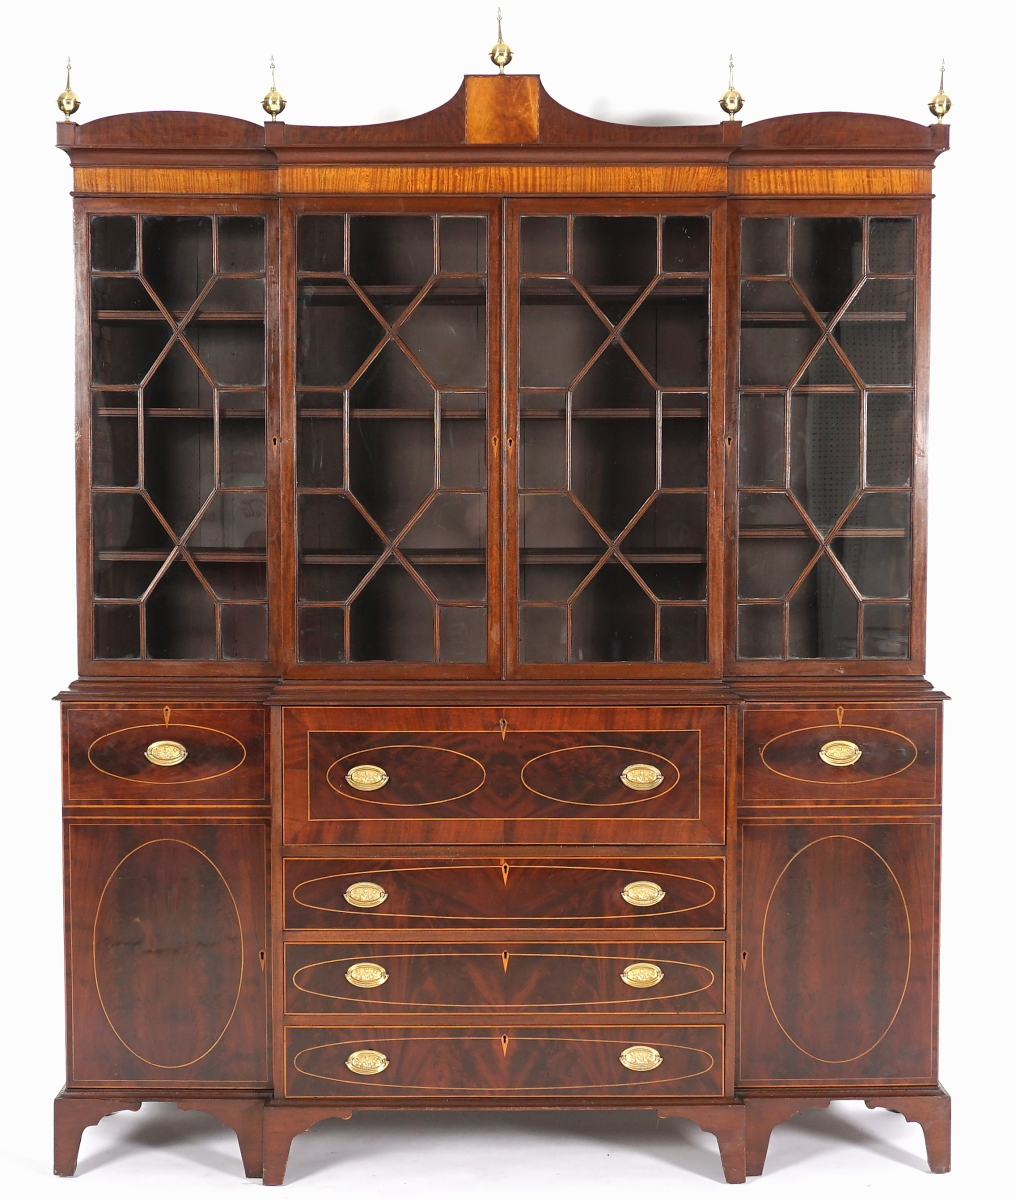 The American Federal inlaid secretary bookcase doubled its high estimate to finish at $10,030. Possibly of Pennsylvania origin, the circa 1800 breakfront featured a mahogany case with fruit wood string inlay.